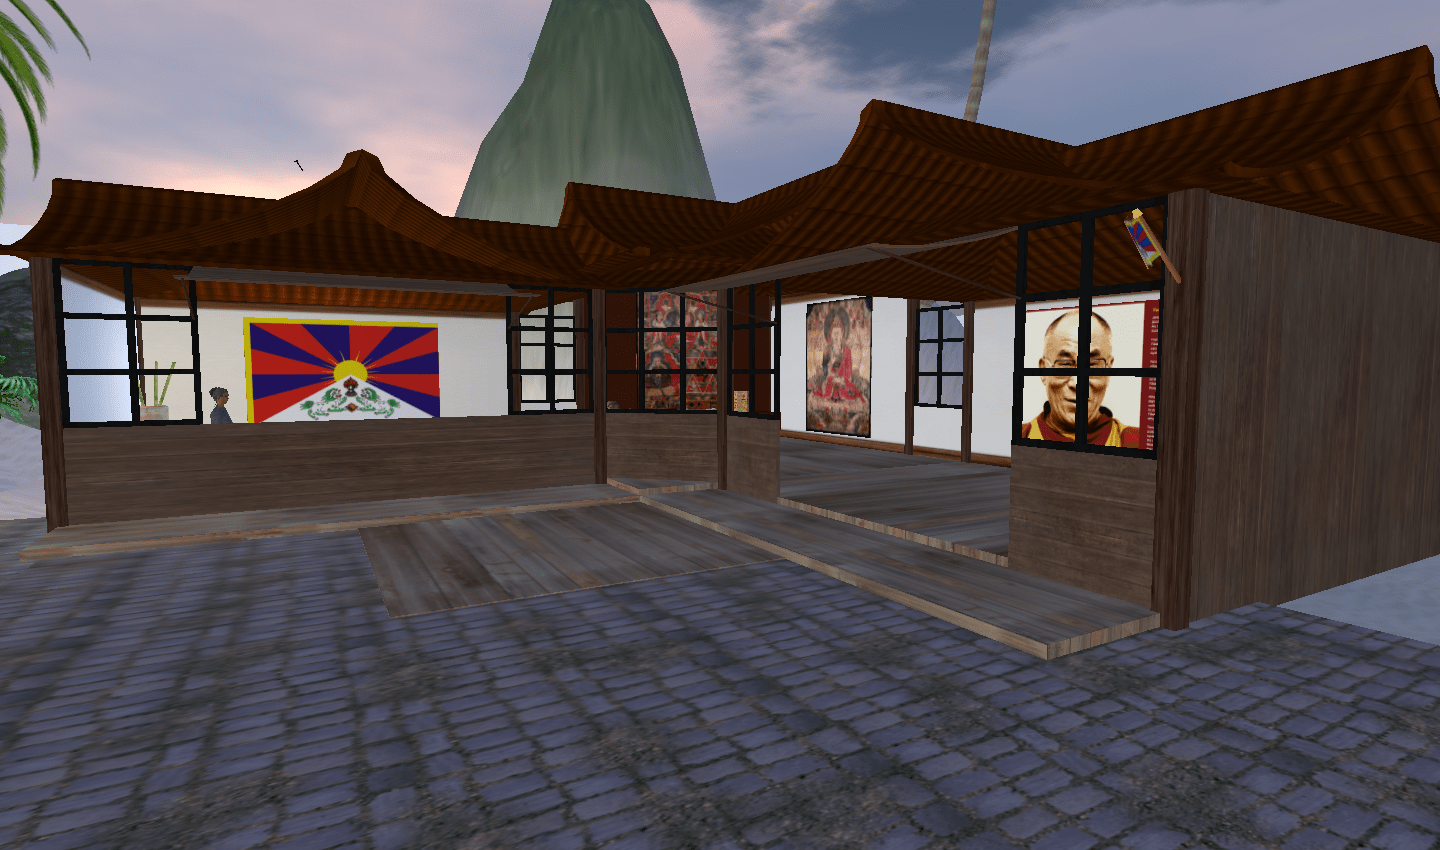 Potala Palance project in Second Life